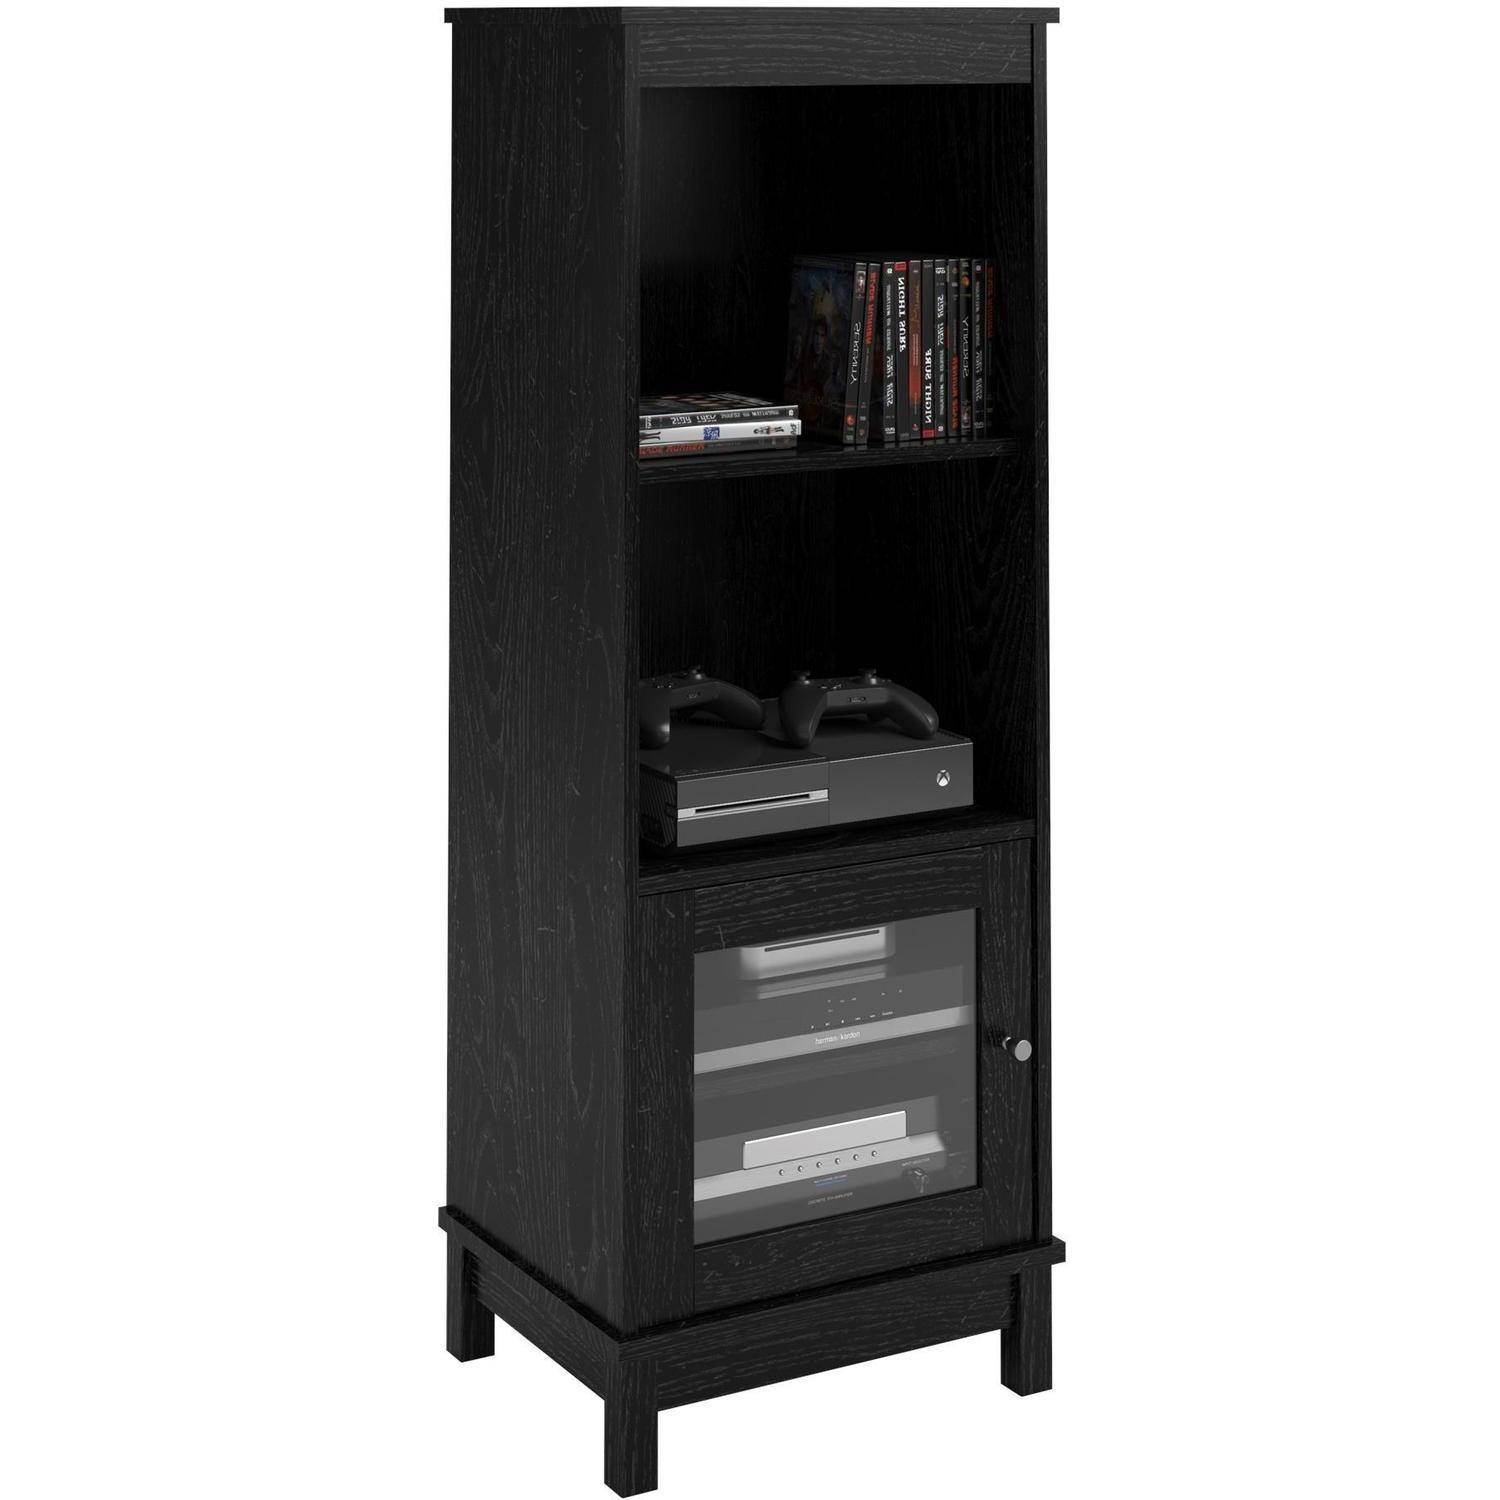 Marvelous Mainstays Media Storage Bookcase, Multiple Finishes   Walmart.com